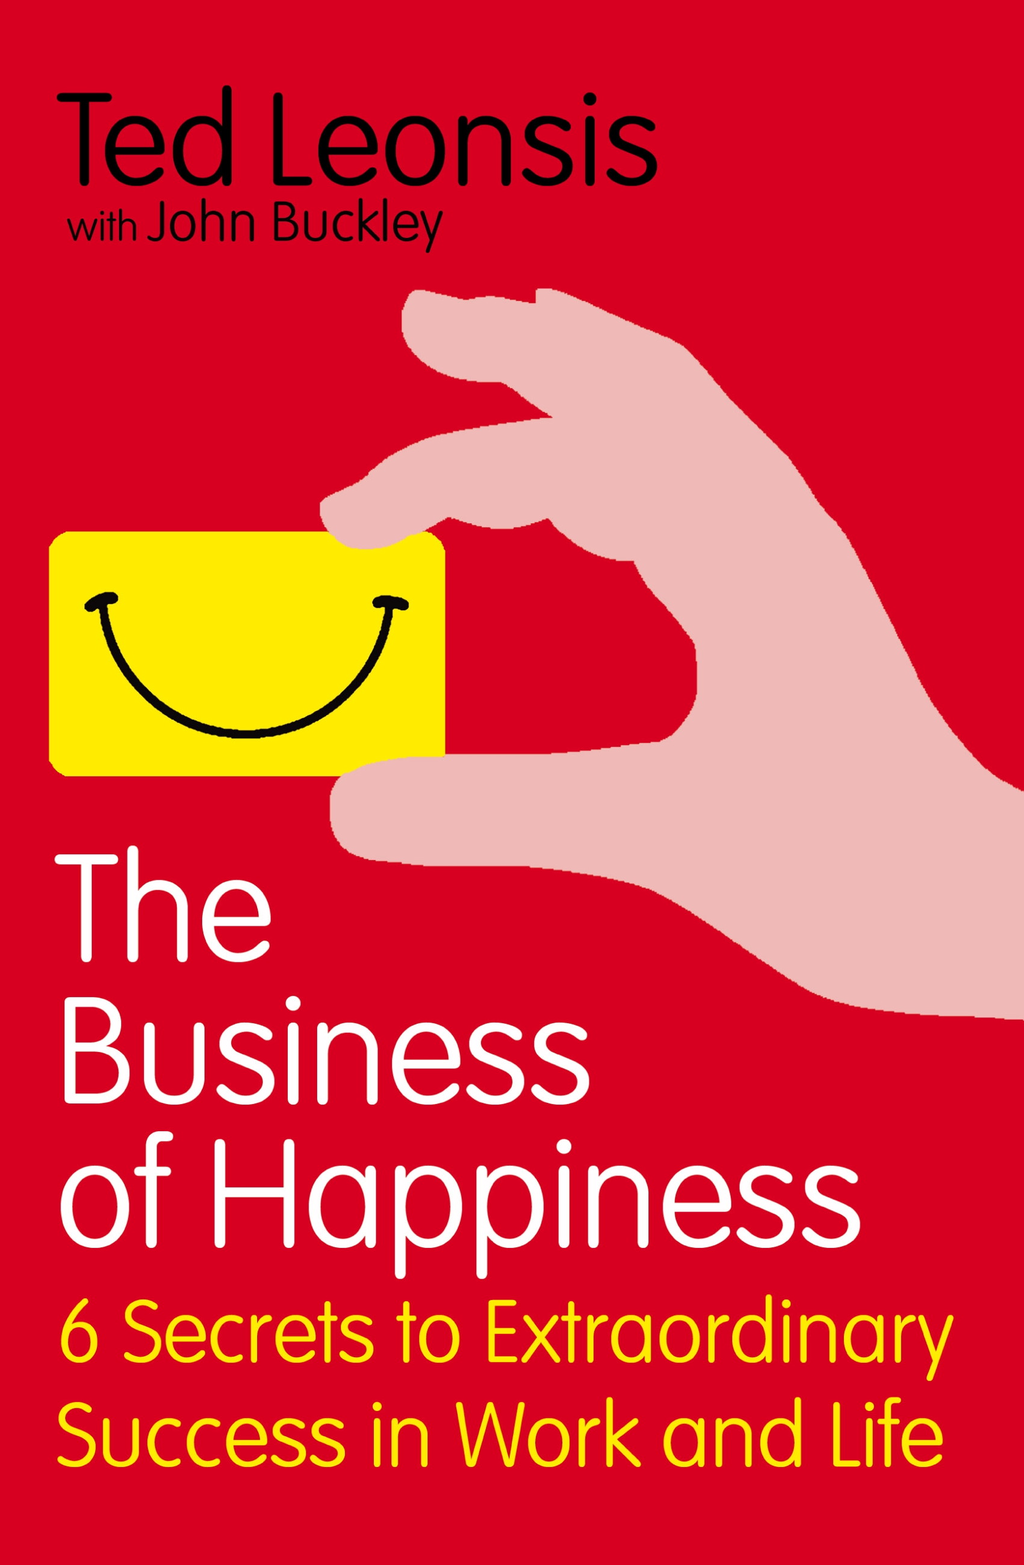 The Business of Happiness How Being Happy Can Help Build Your Career